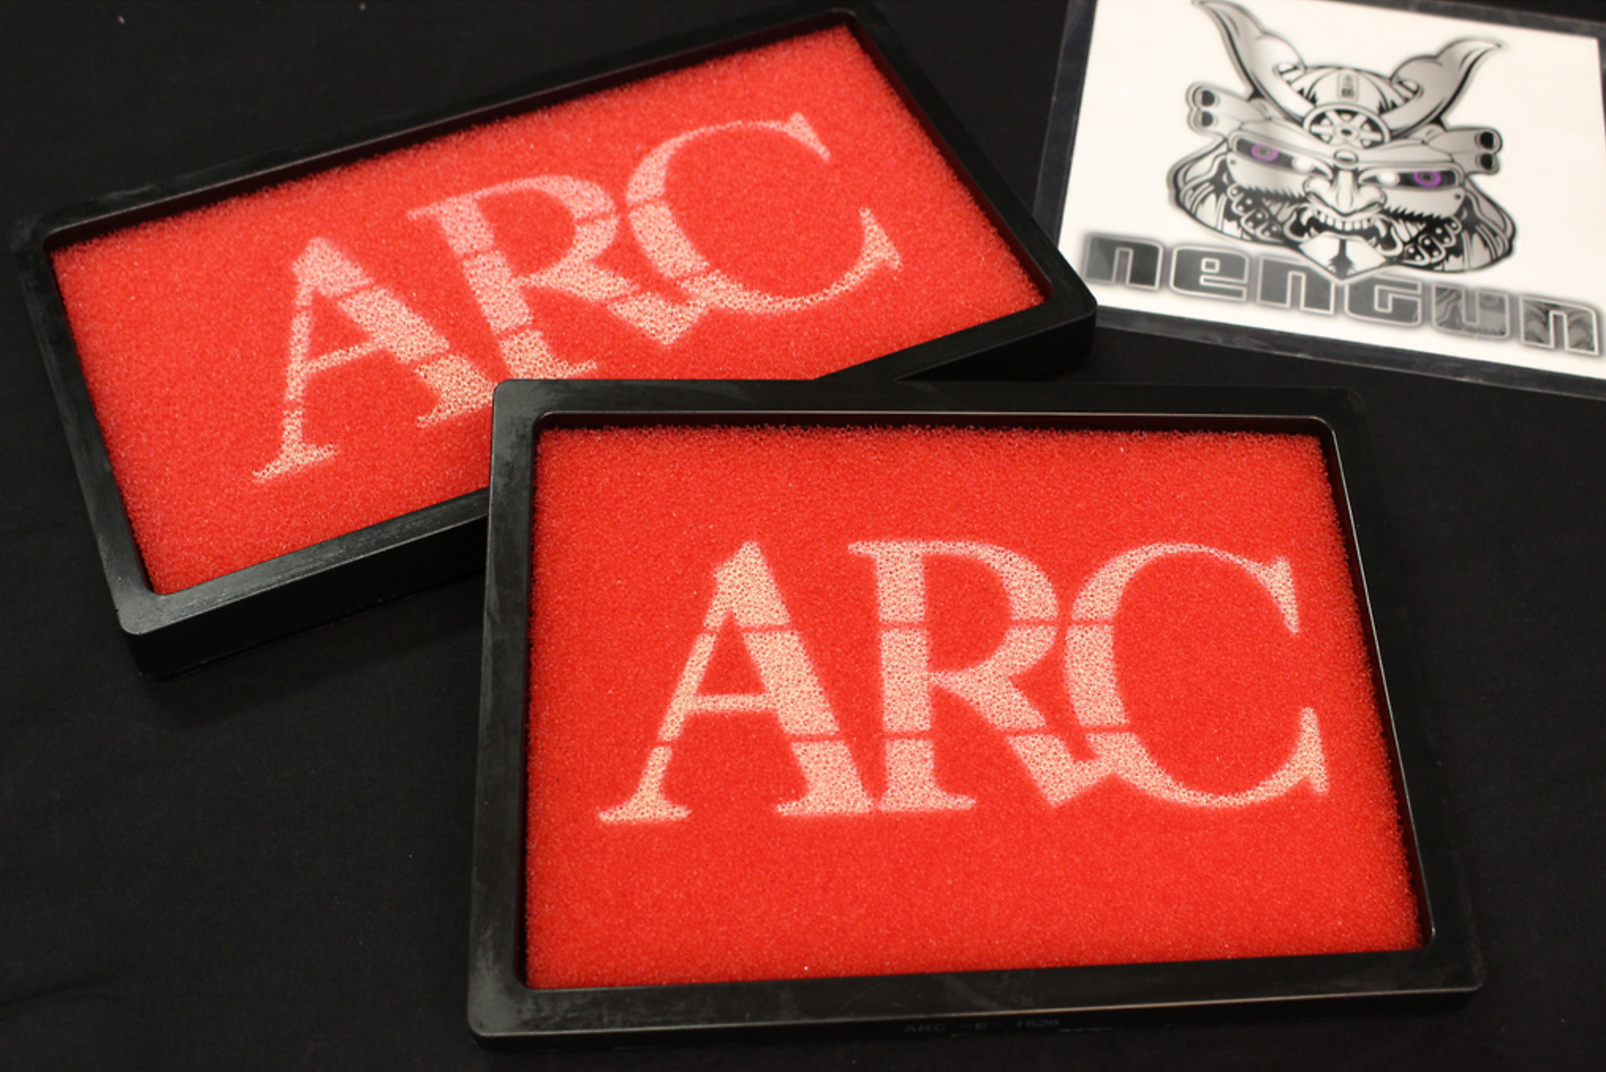 ARC Replacement Filters at our lowest price!